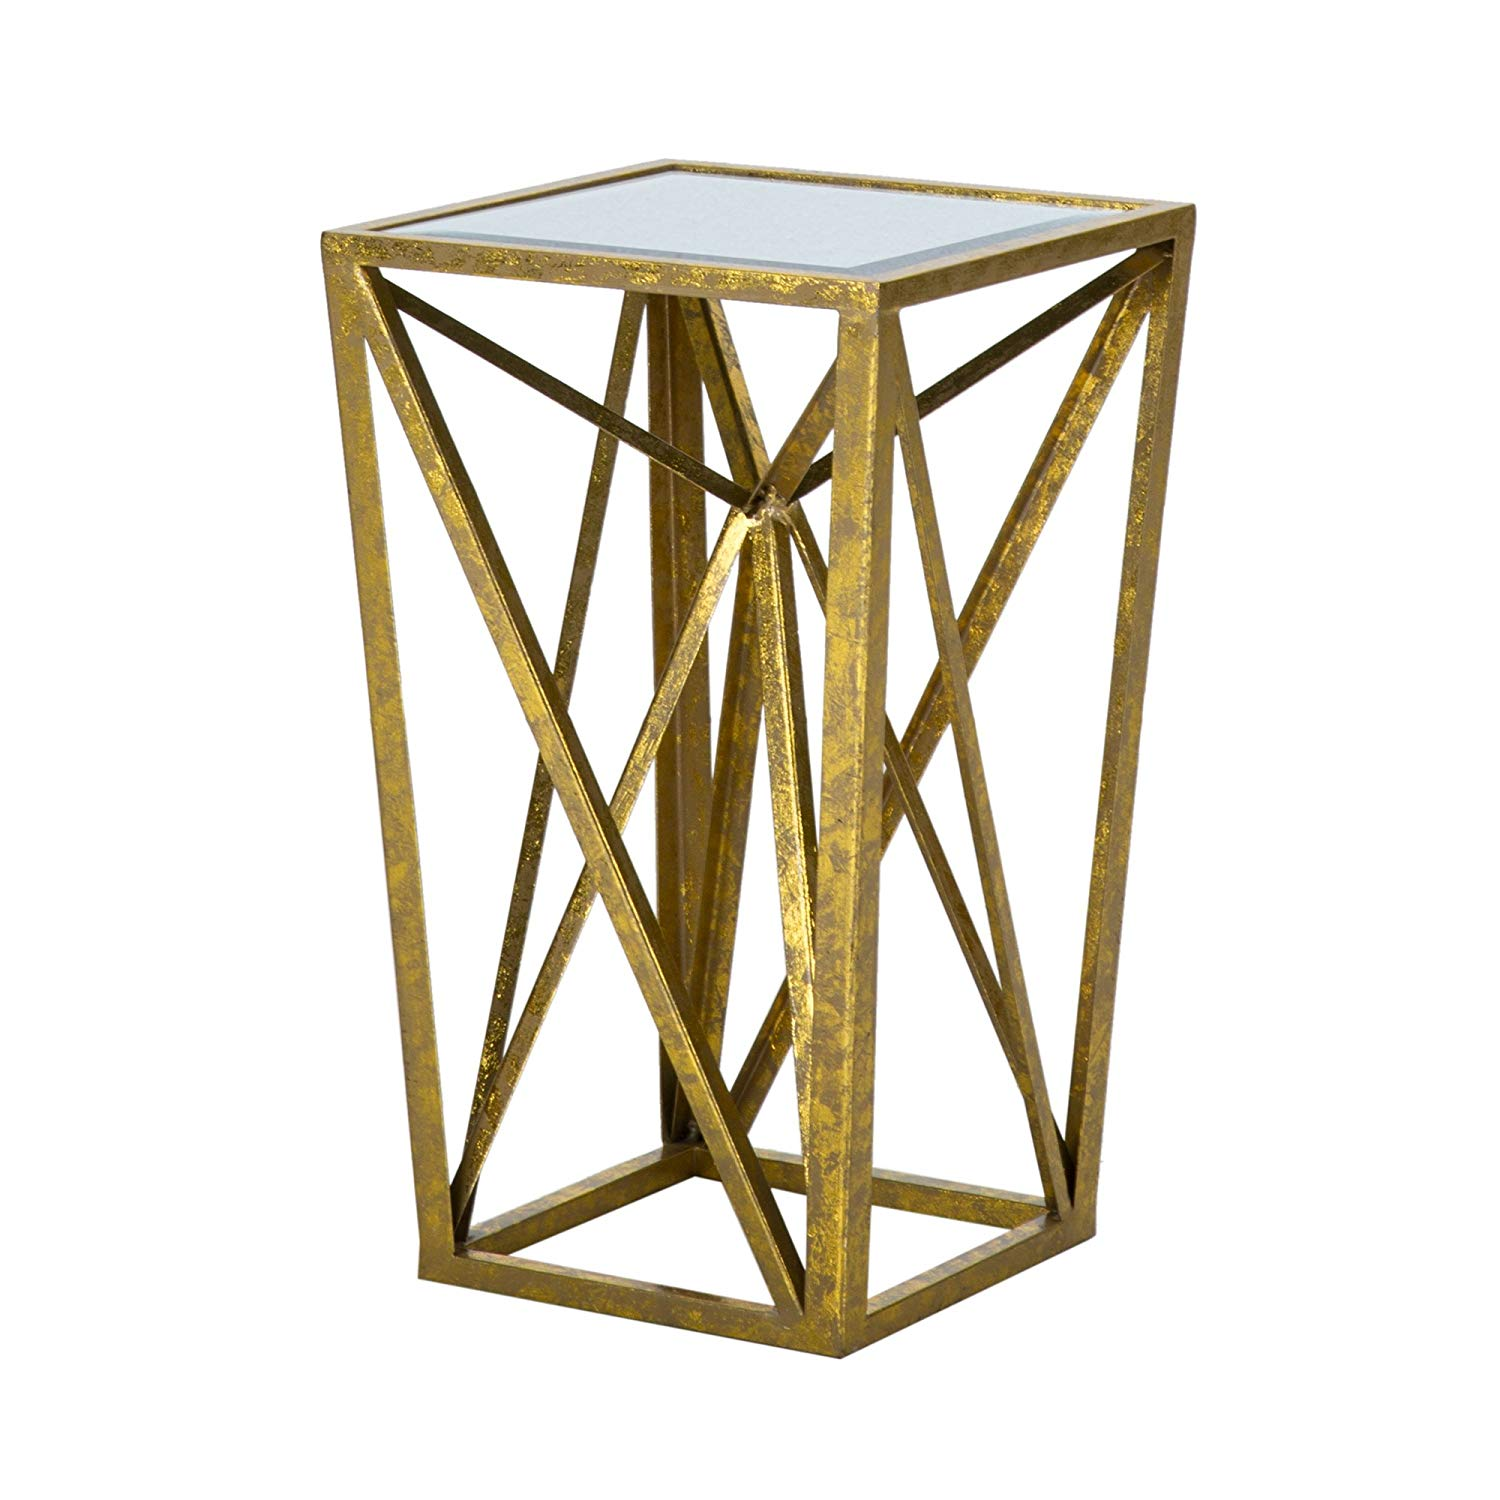 madison park zee accent tables mirror glass metal homepop table side gold angular design modern style end piece top hollow round hairpin legs ikea wooden bedside lamps black